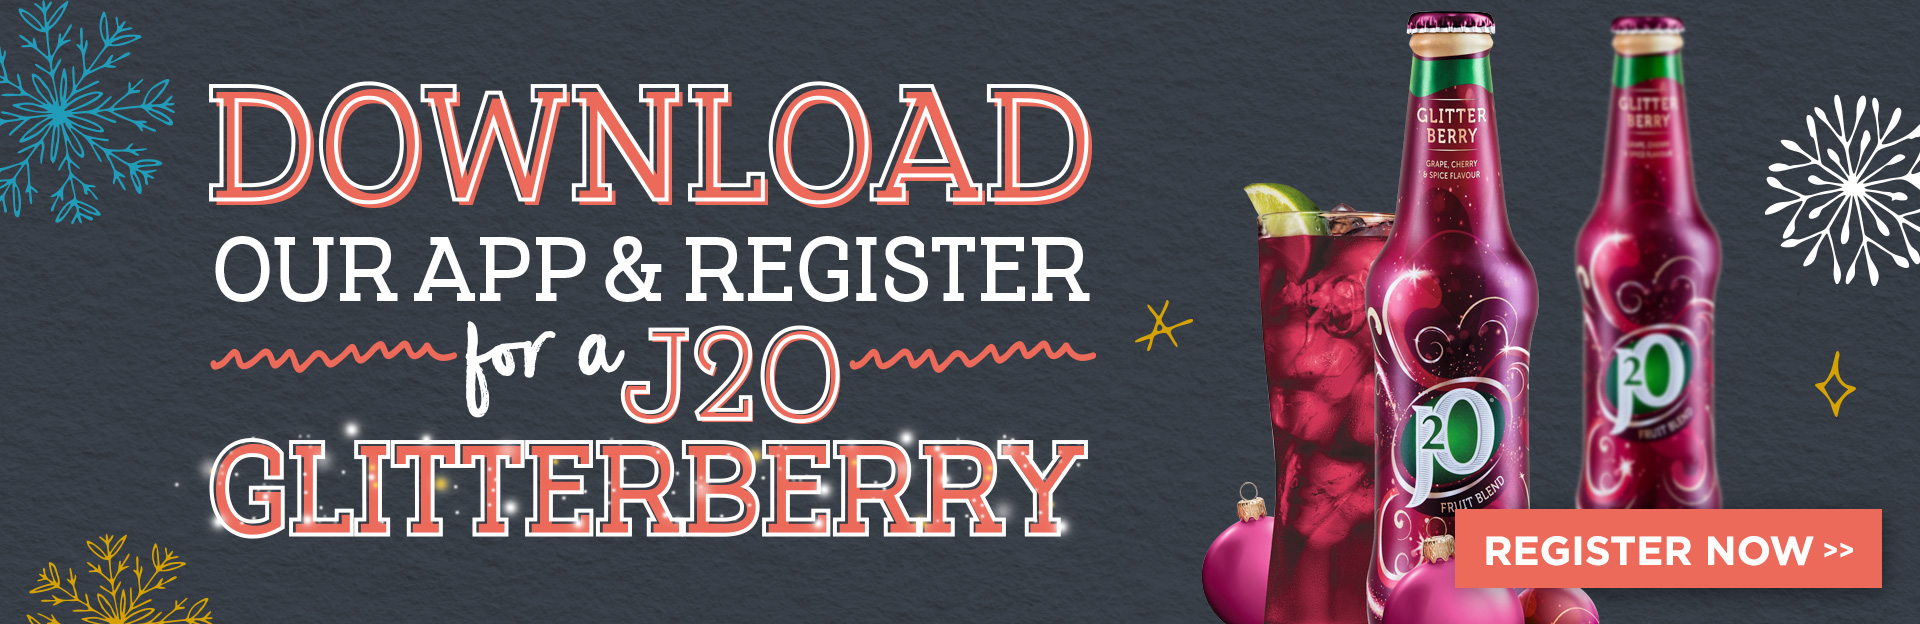 signup-offer-glitterberry.jpg